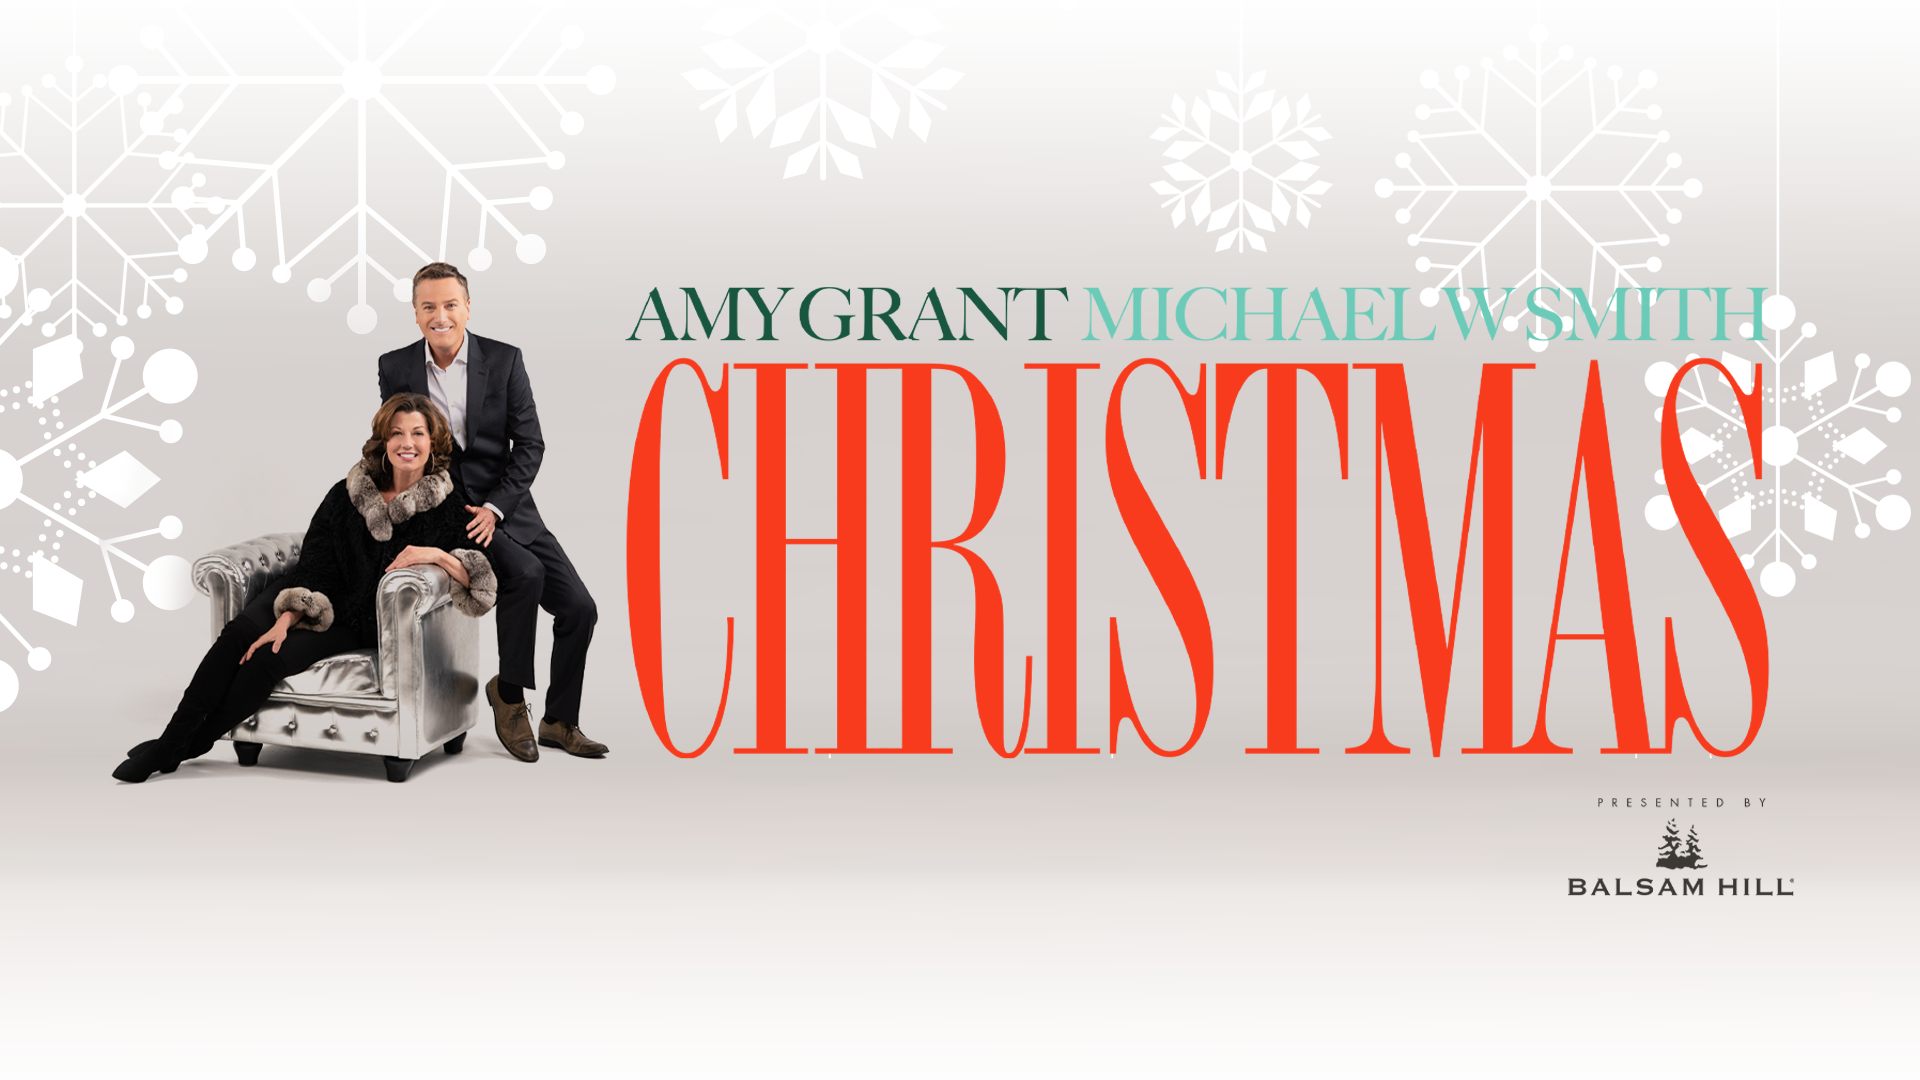 Amy Grant, Michael W Smith, capital one hall, capital one center, things to do in DC, Tysons, christian music, contemporary christian